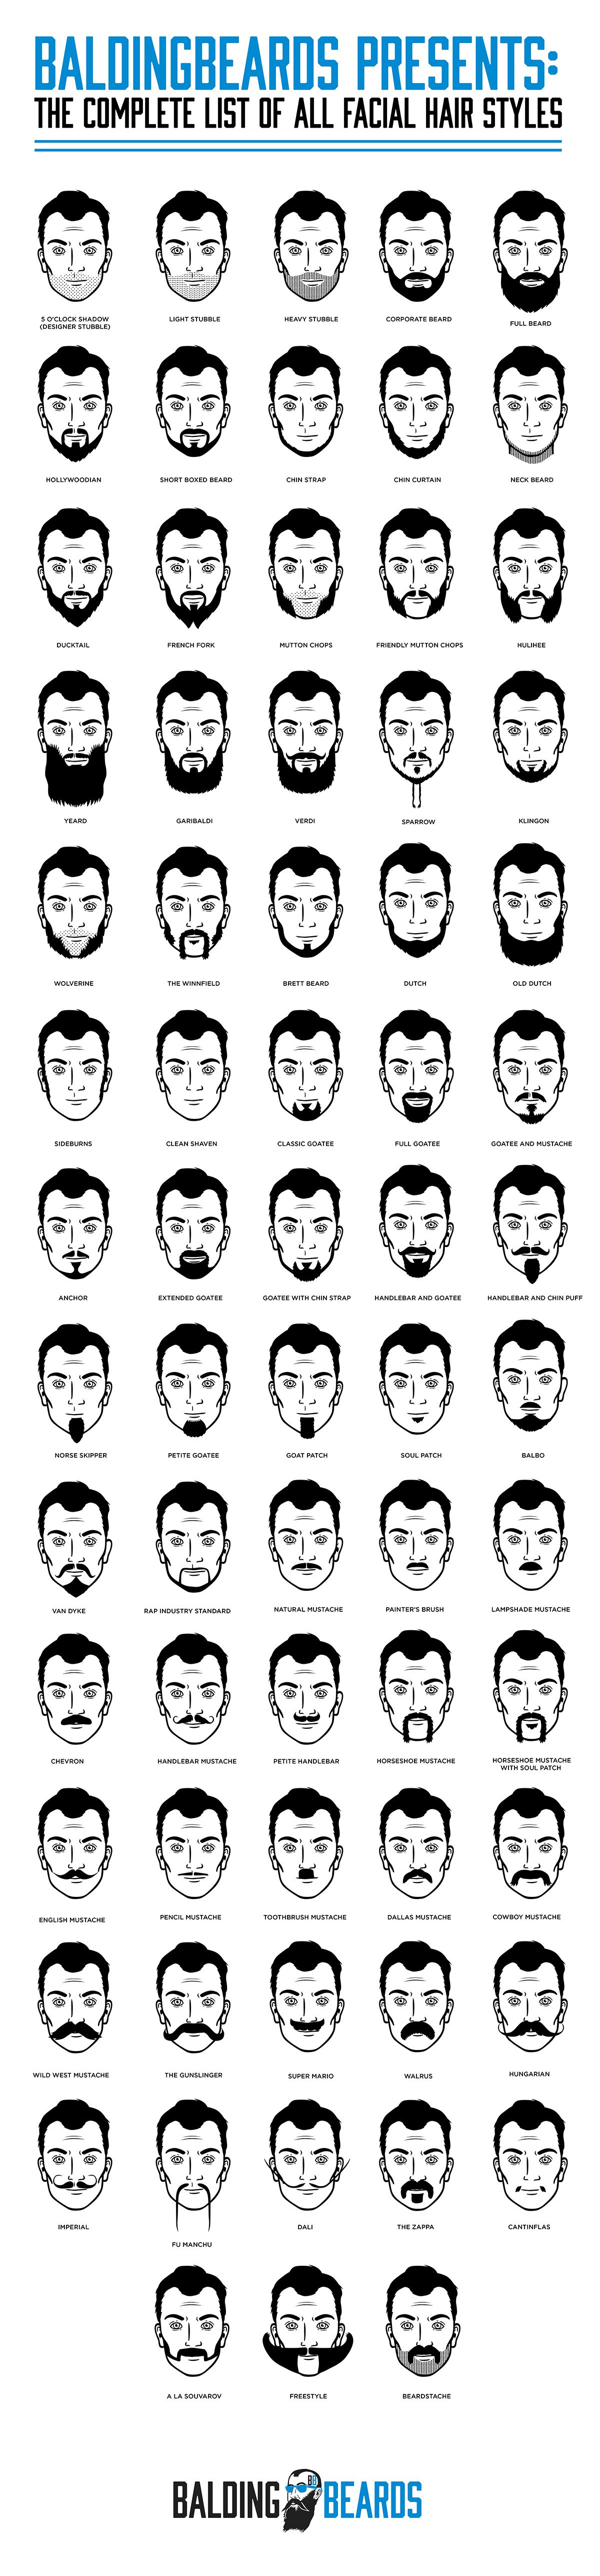 68 Facial Hair Styles for Men